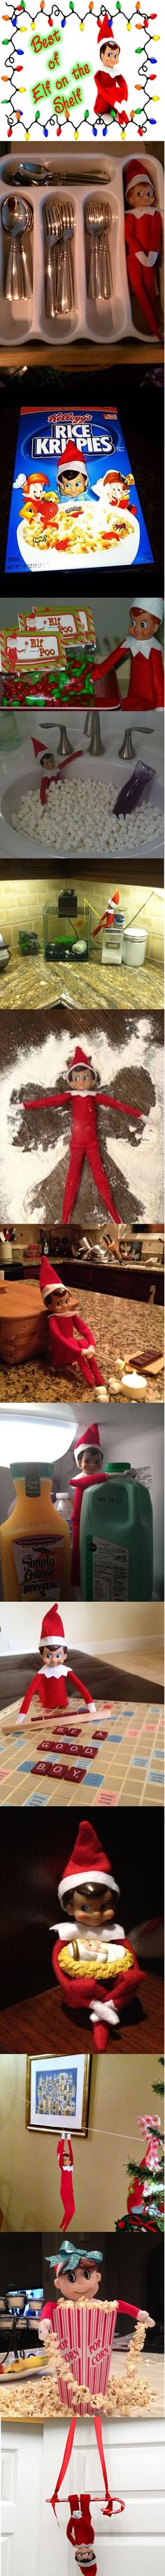 Best of Elf on the Shelf ;) #elf #christmas